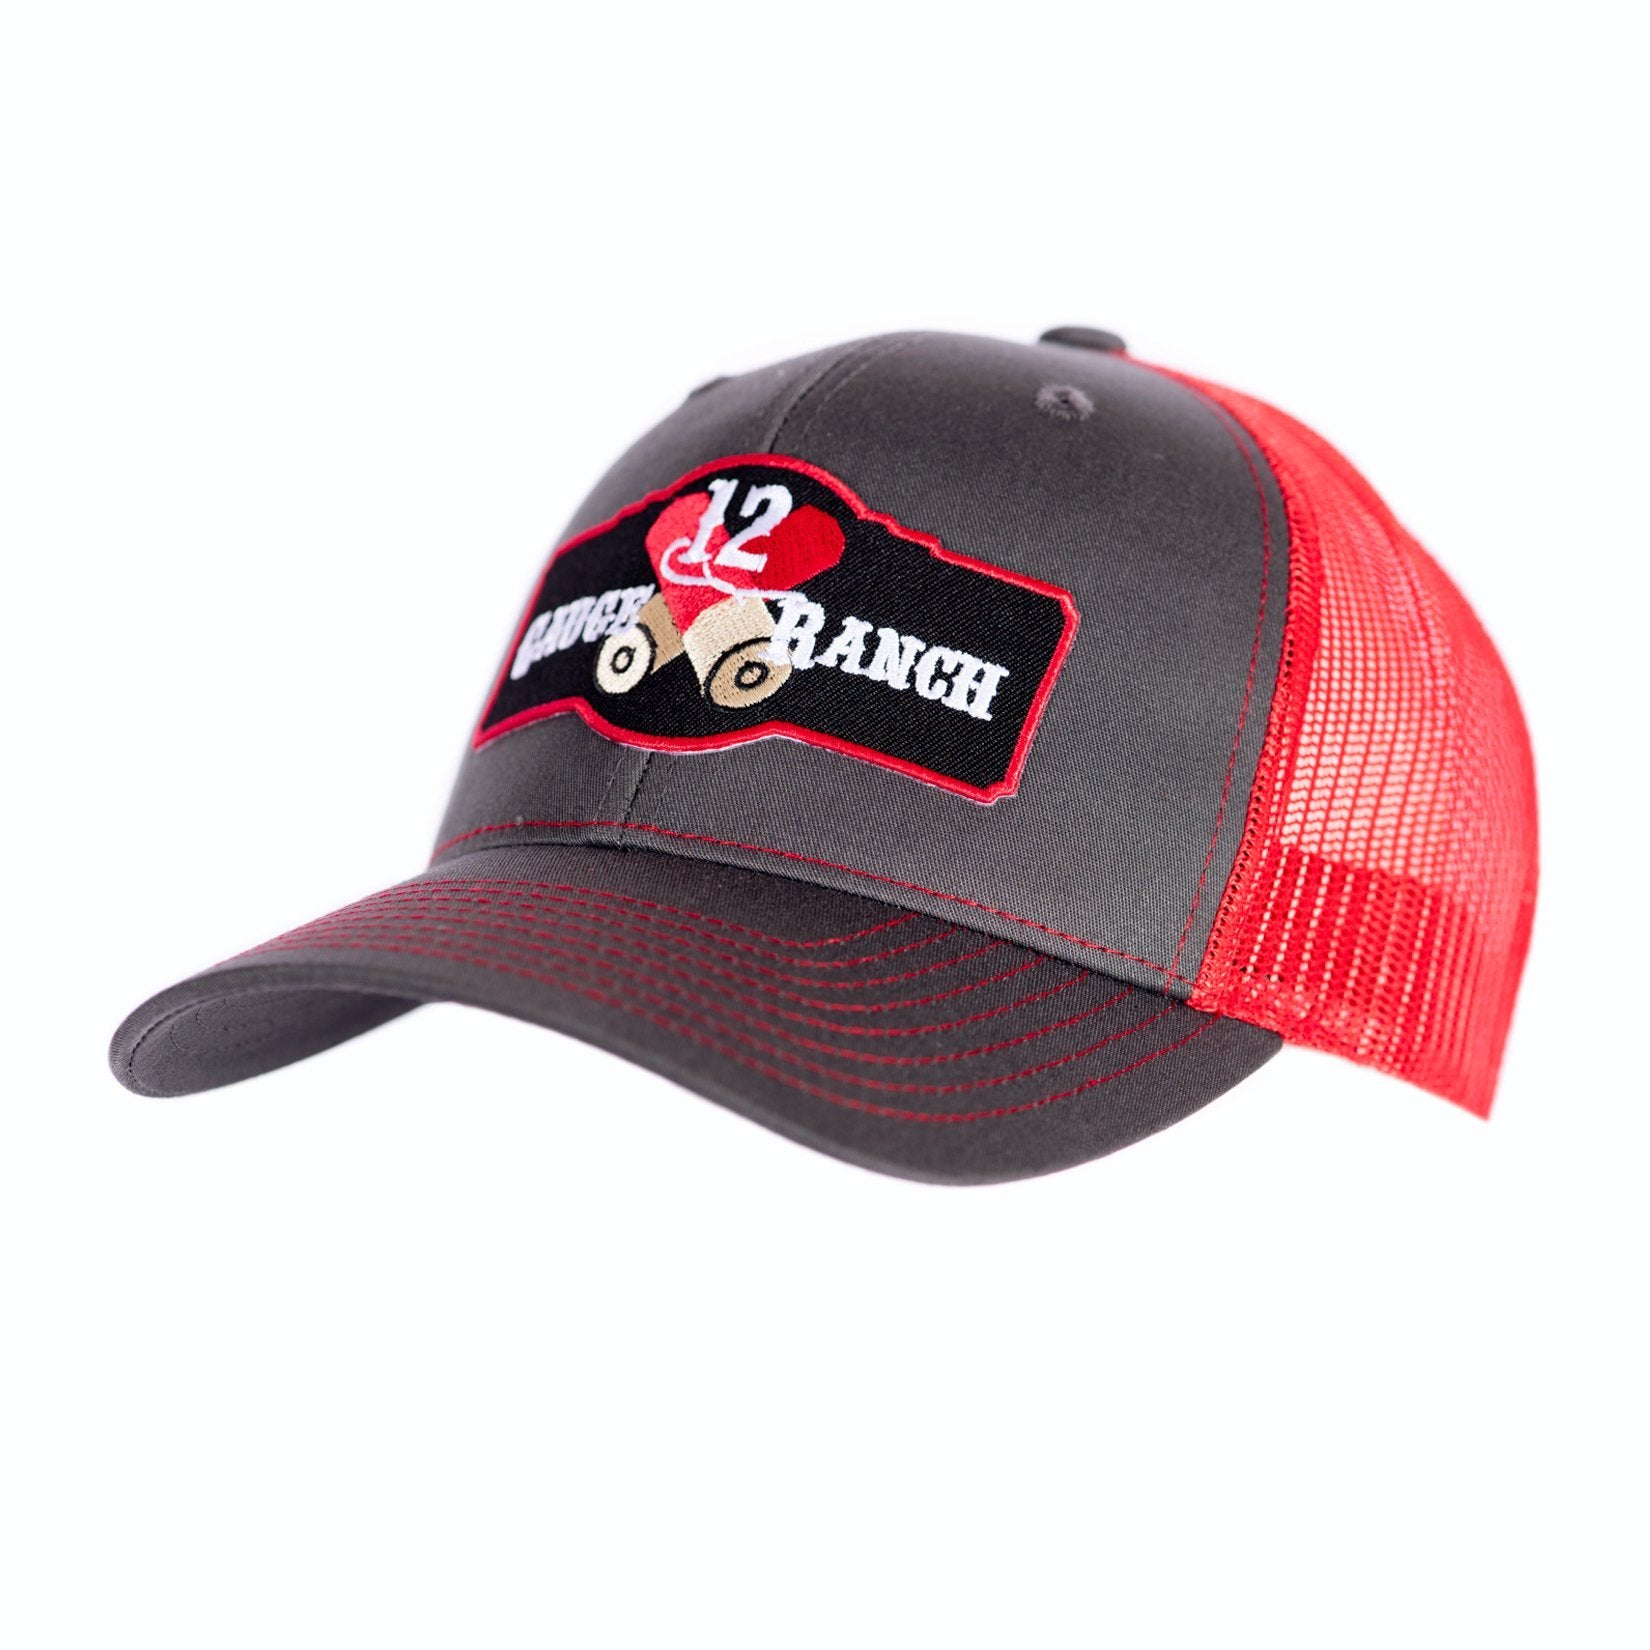 Charcoal and Red 12 Gauge Ranch Baseball Hat (BBH112GR), Hats, 12 Gauge Ranch, 12 Gauge Ranch Ranch  12 Gauge Ranch